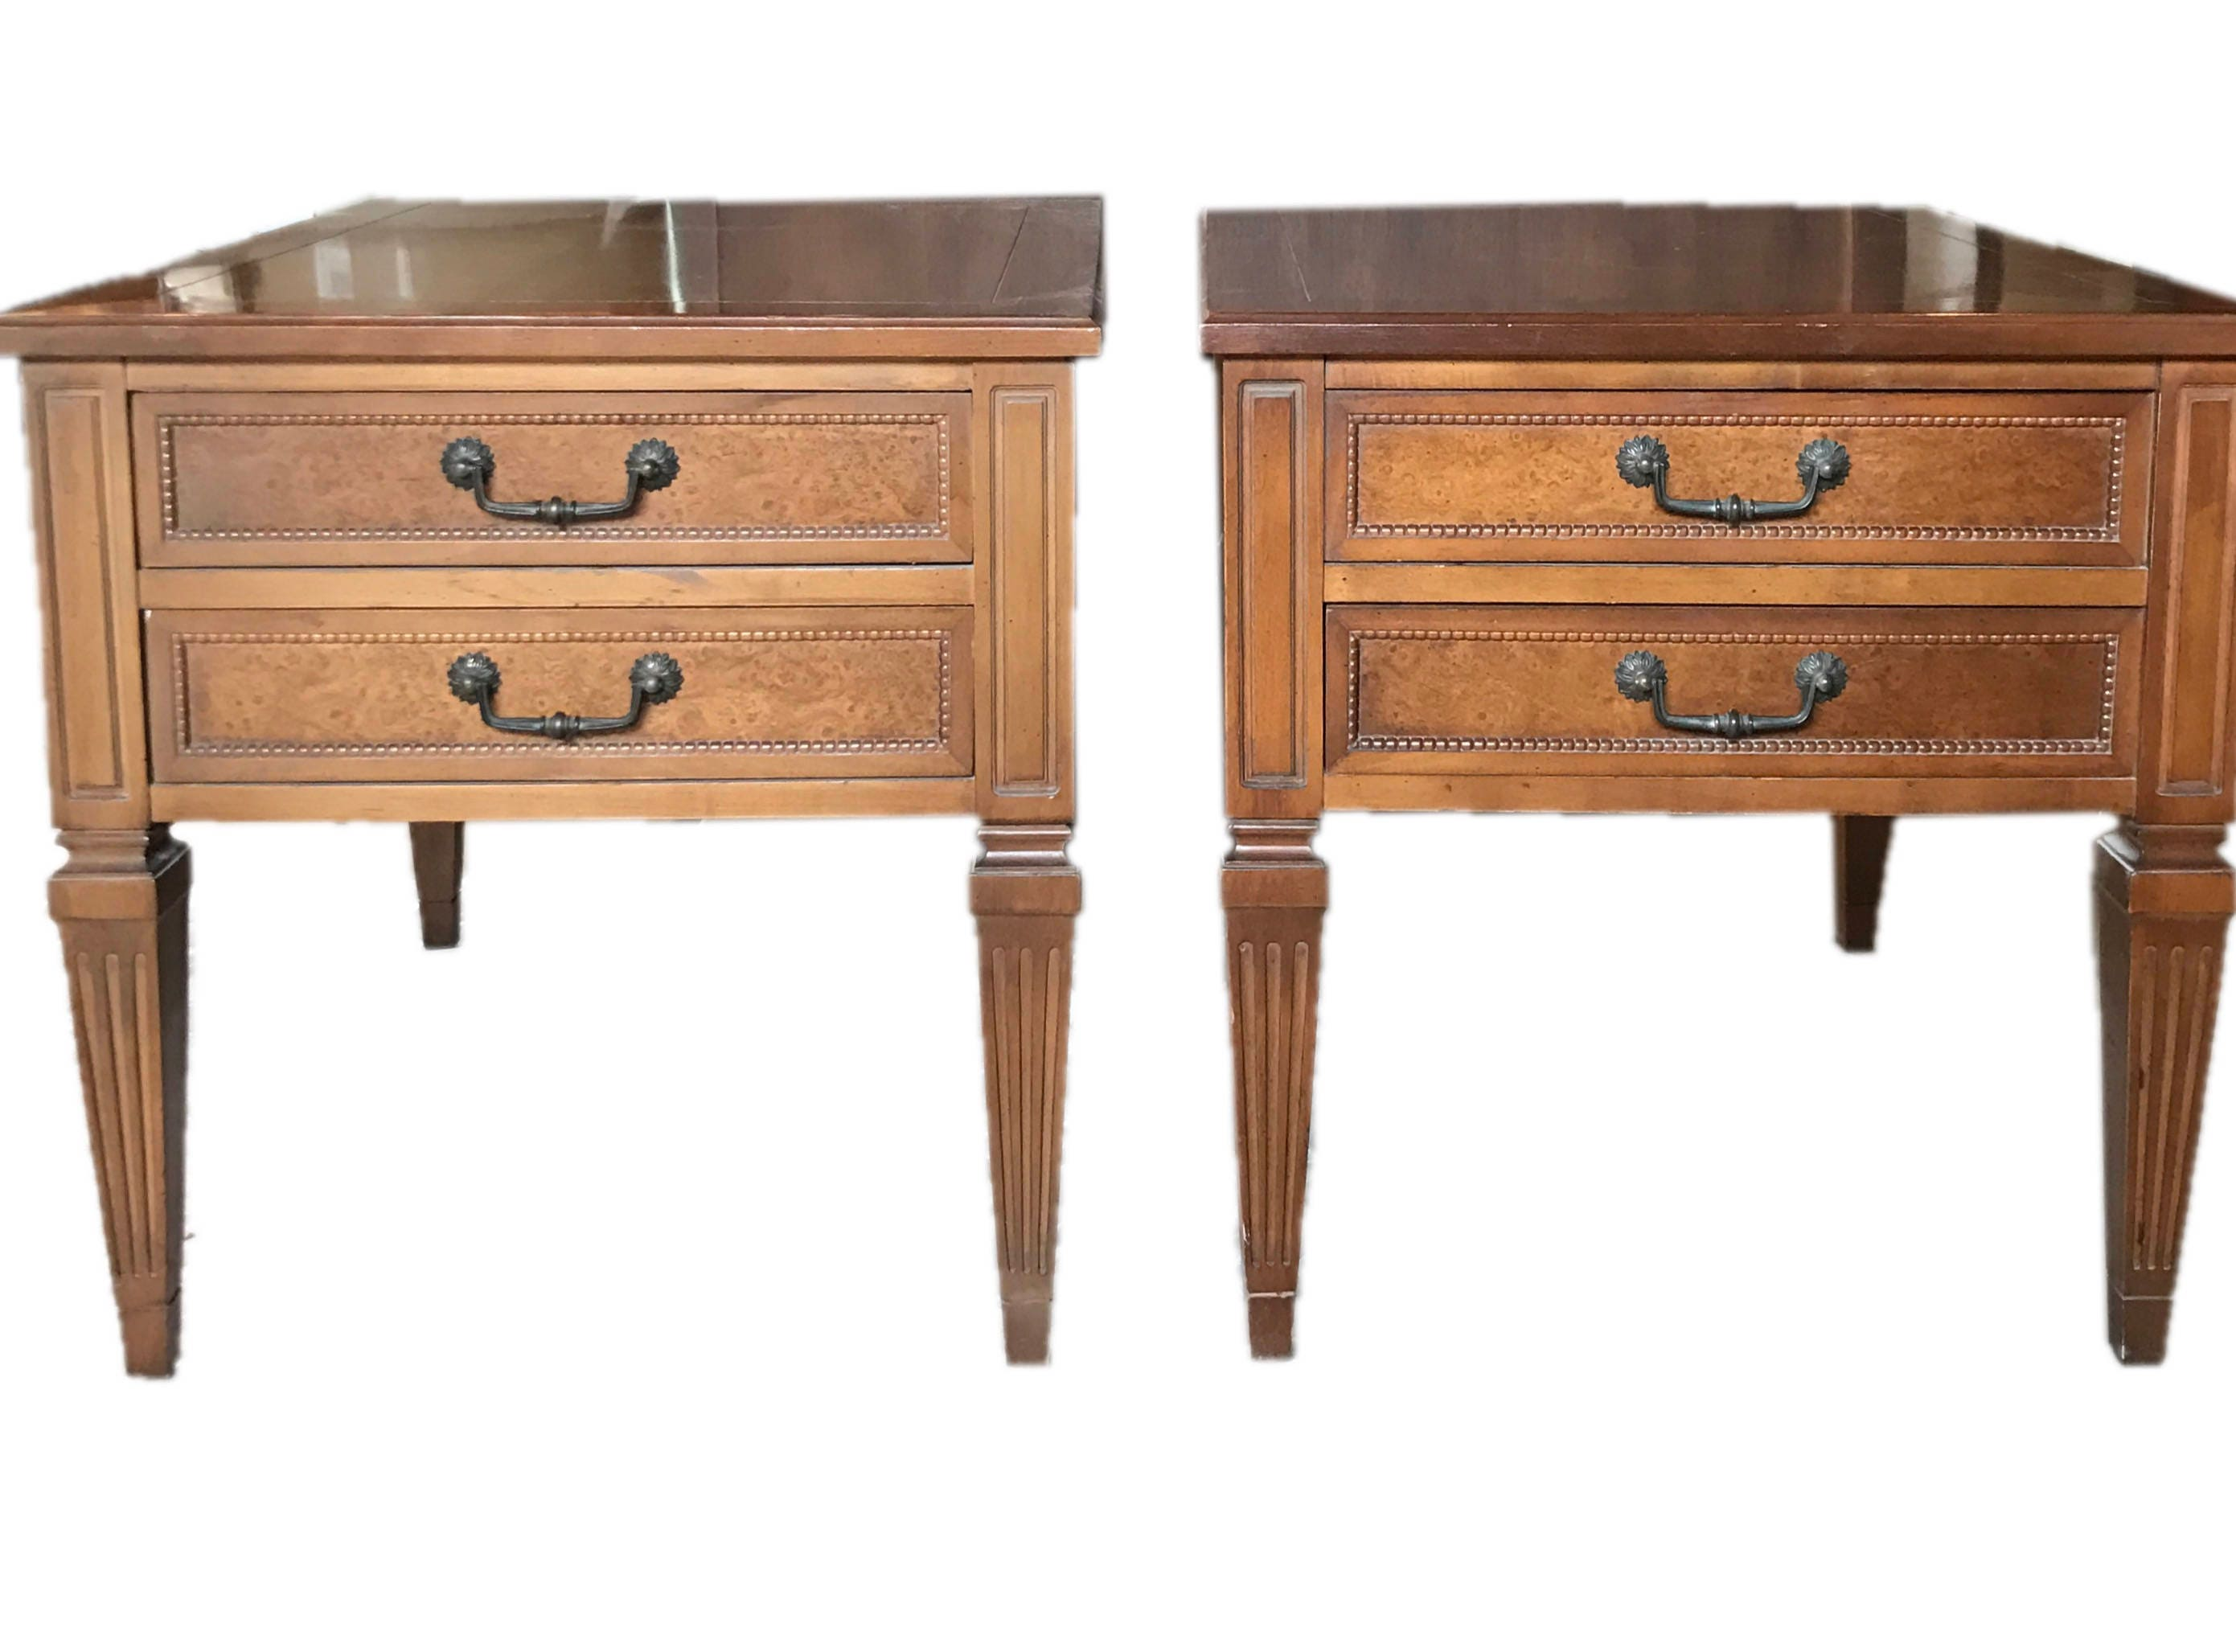 mid century modern end table set painted white w gold handles solid wood by hammery dovetail drawers drop bail pulls